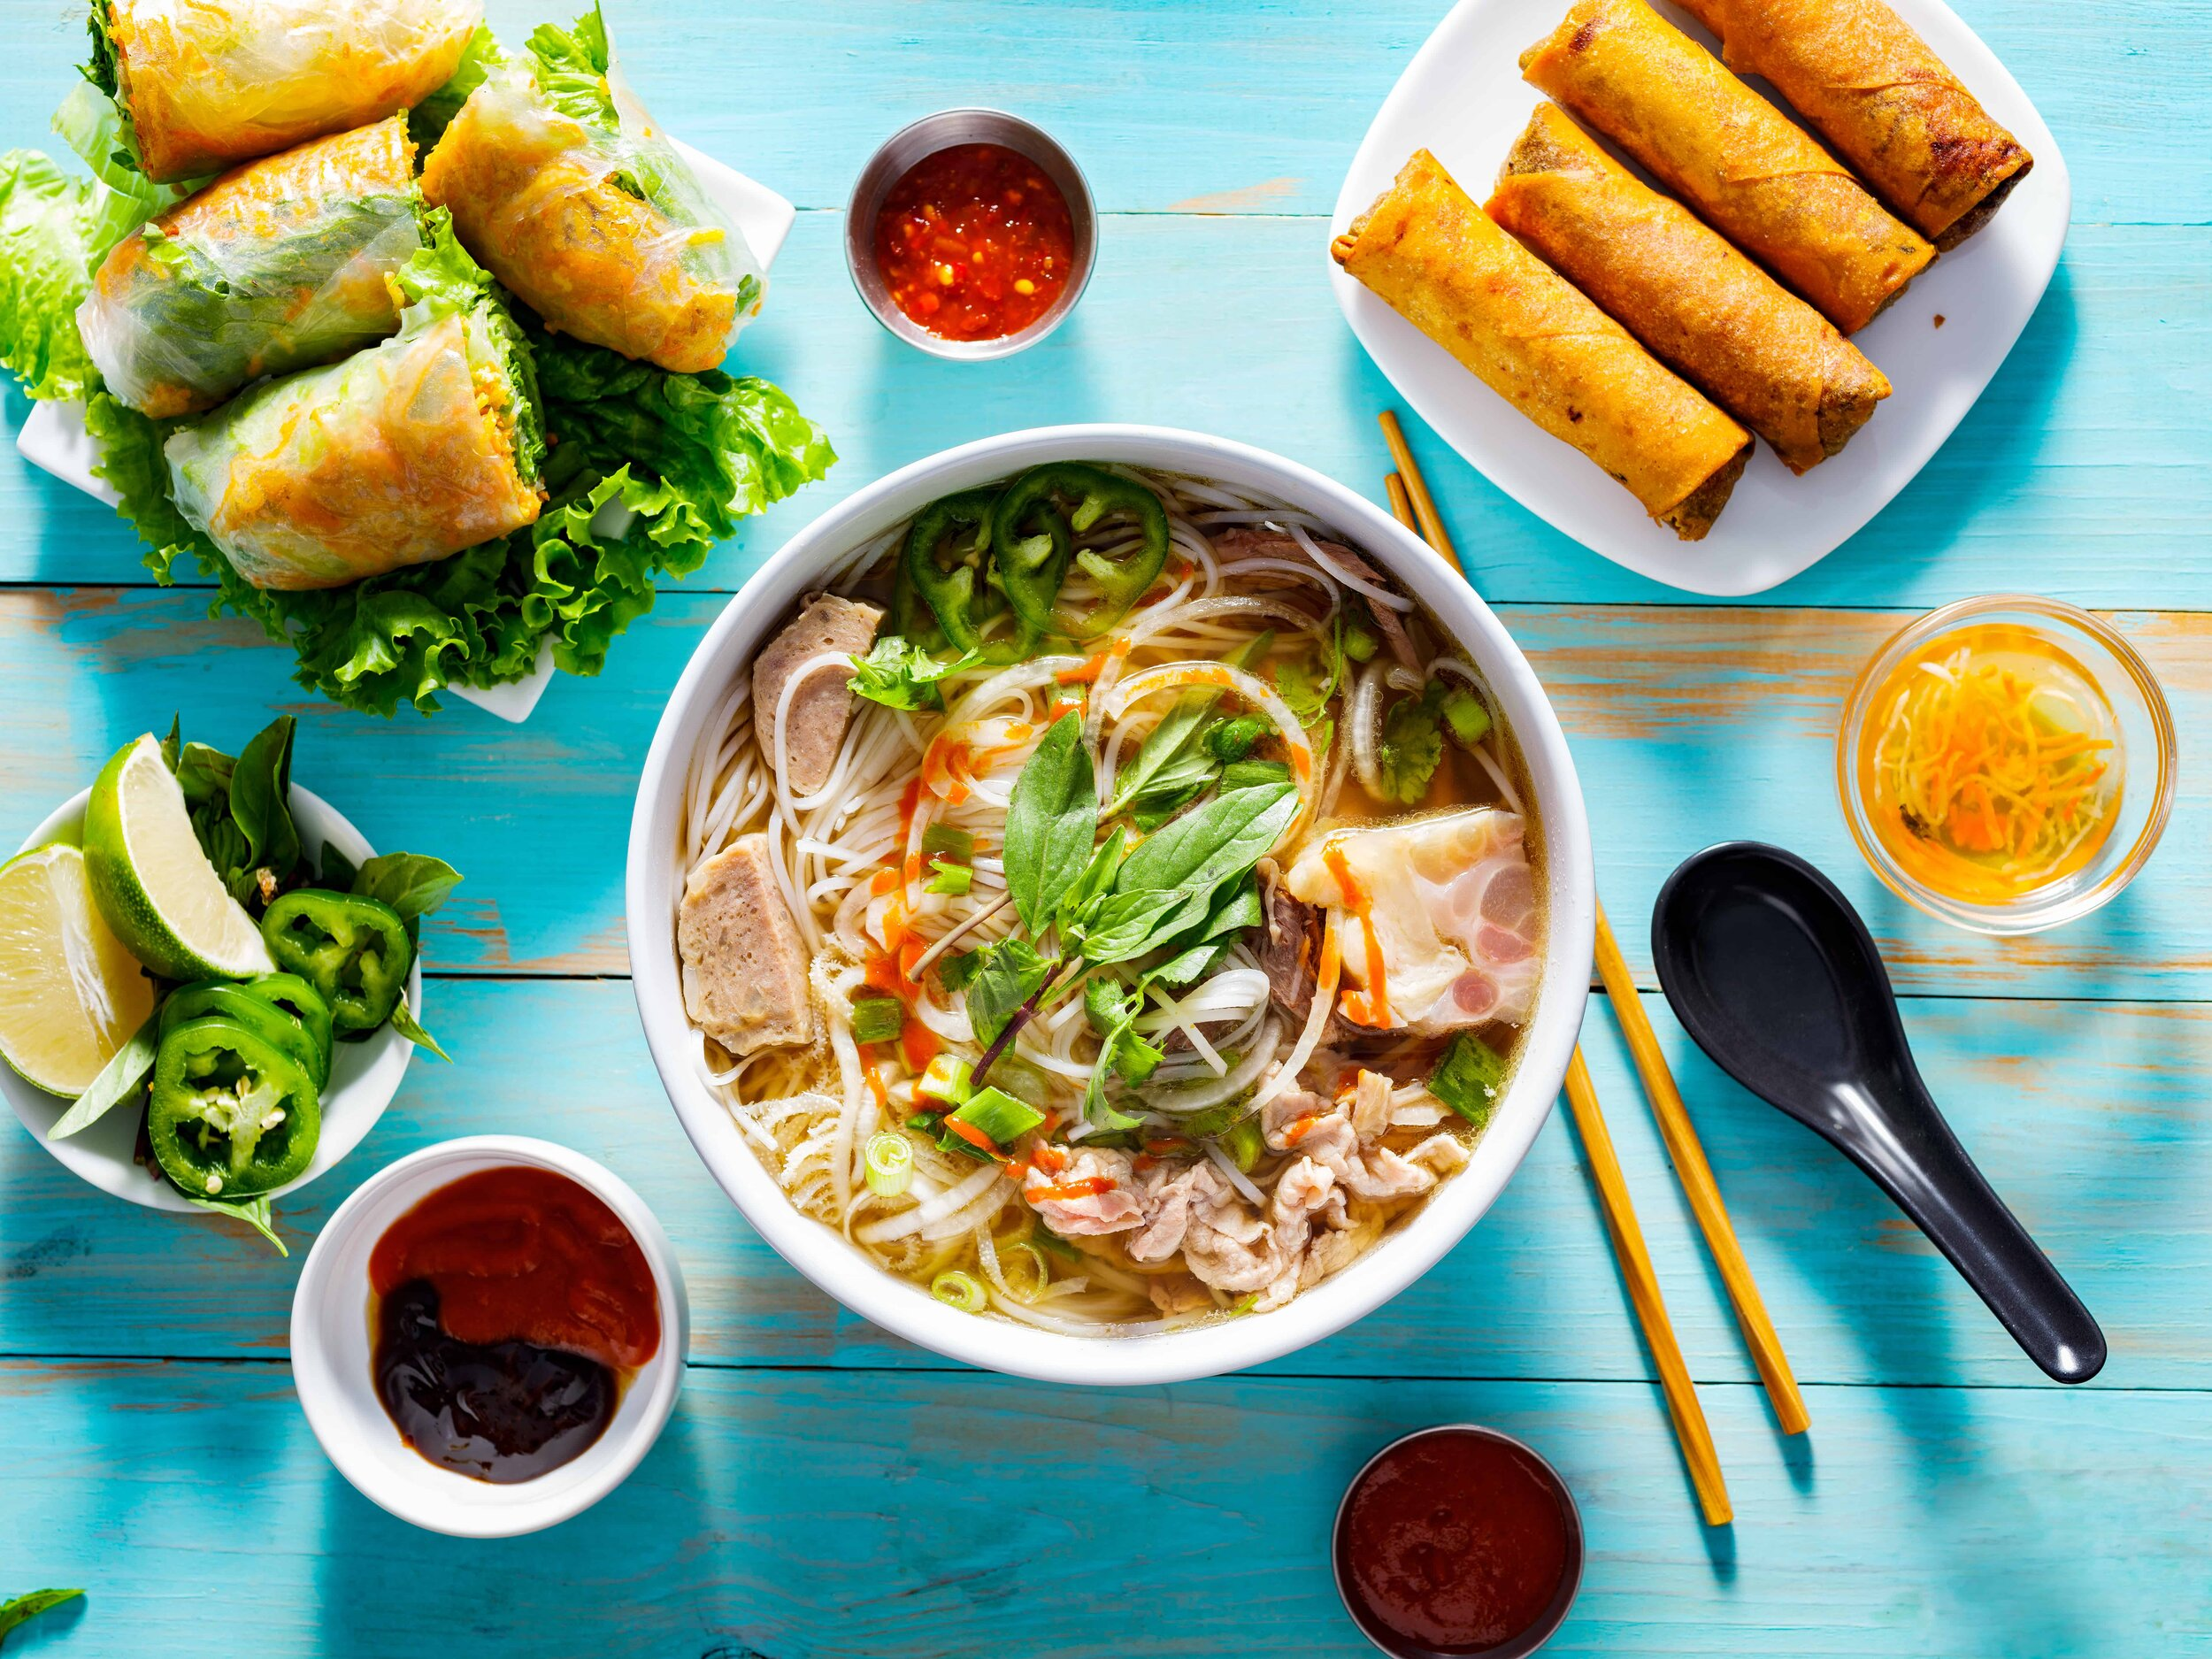 Canva - Vietnamese Pho Bo Soup with Appetizers on Table and Drizzled with Sriracha Sauce (1).jpg